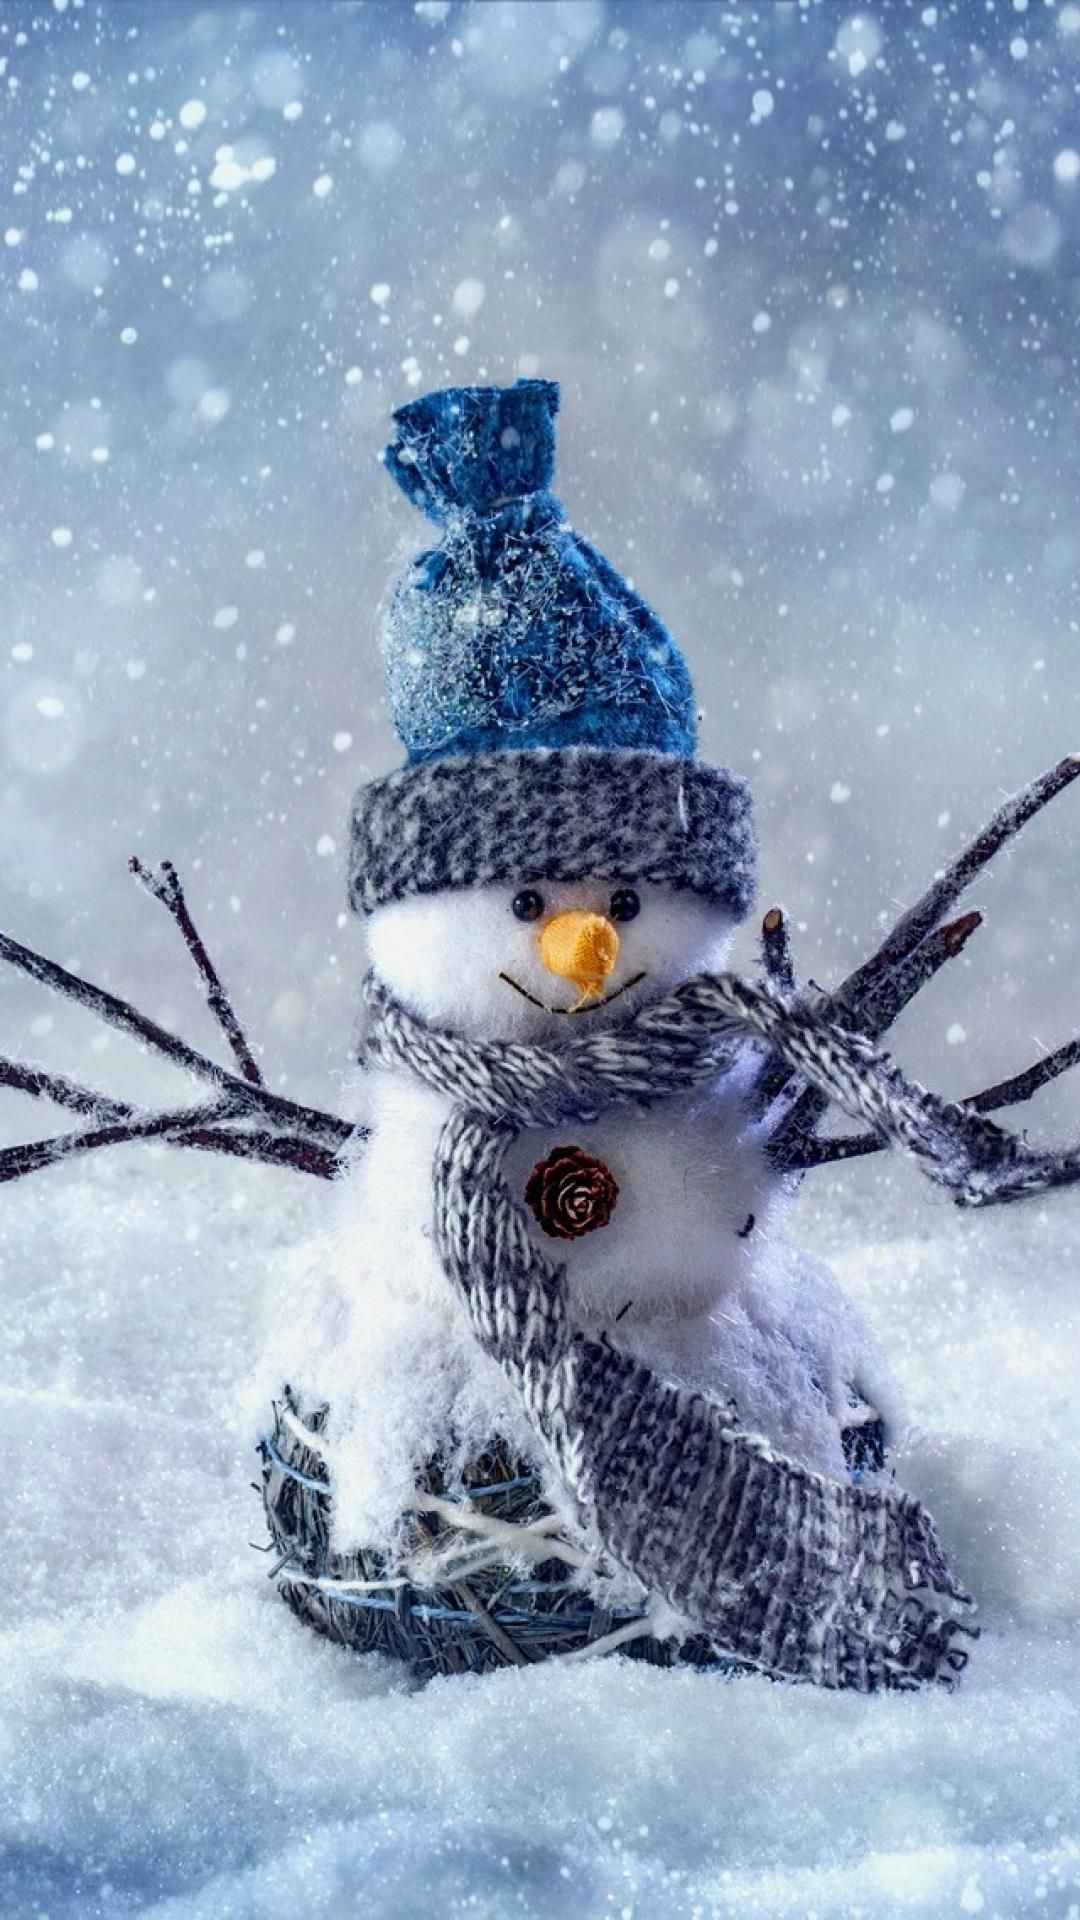 christmas snowman new year iphone plus wallpaper merry christmas jpg 1080x1920 snowman birds screensavers